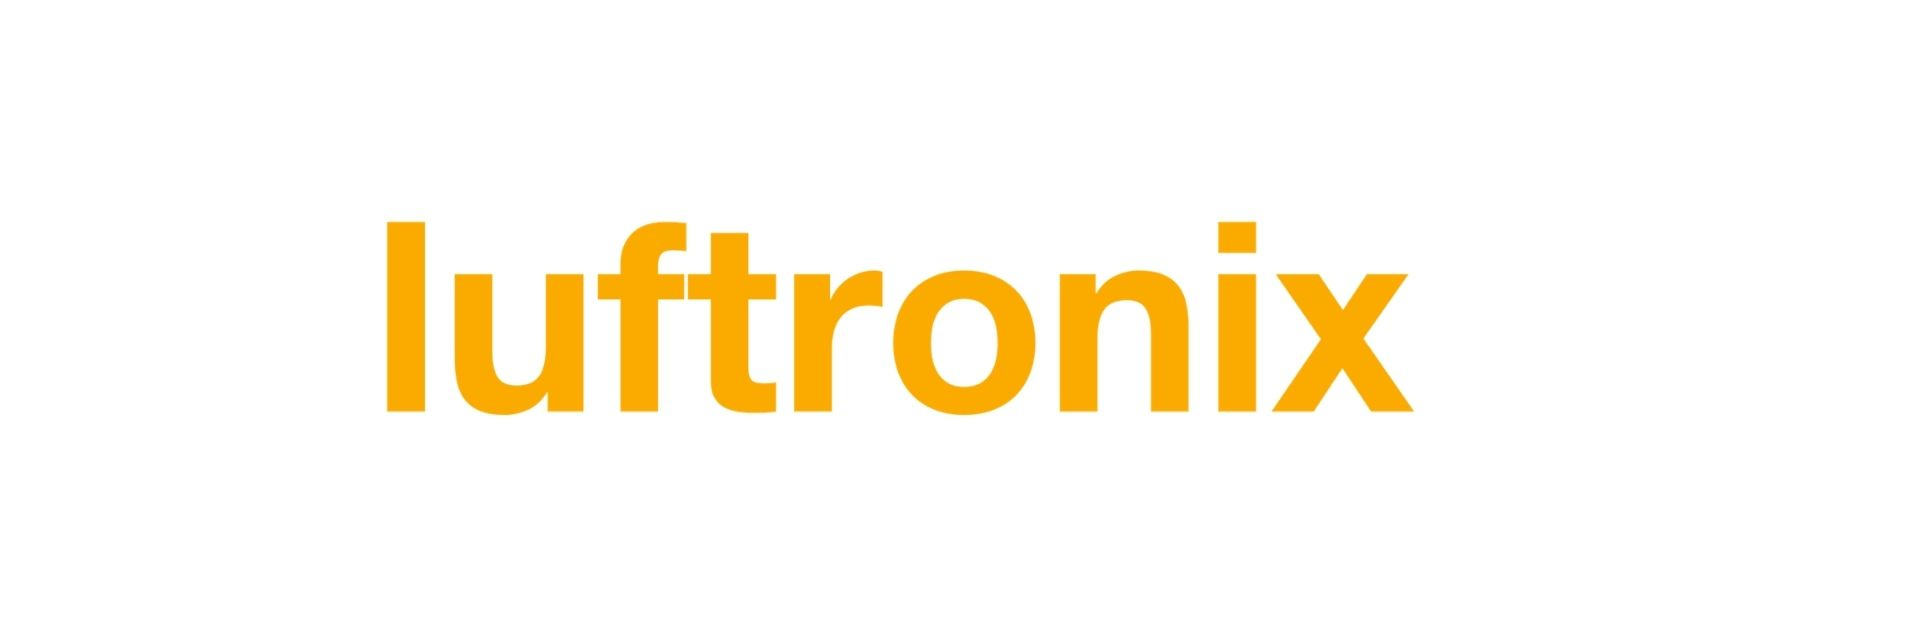 logo of Luftronix, a Mainblades drone alternative